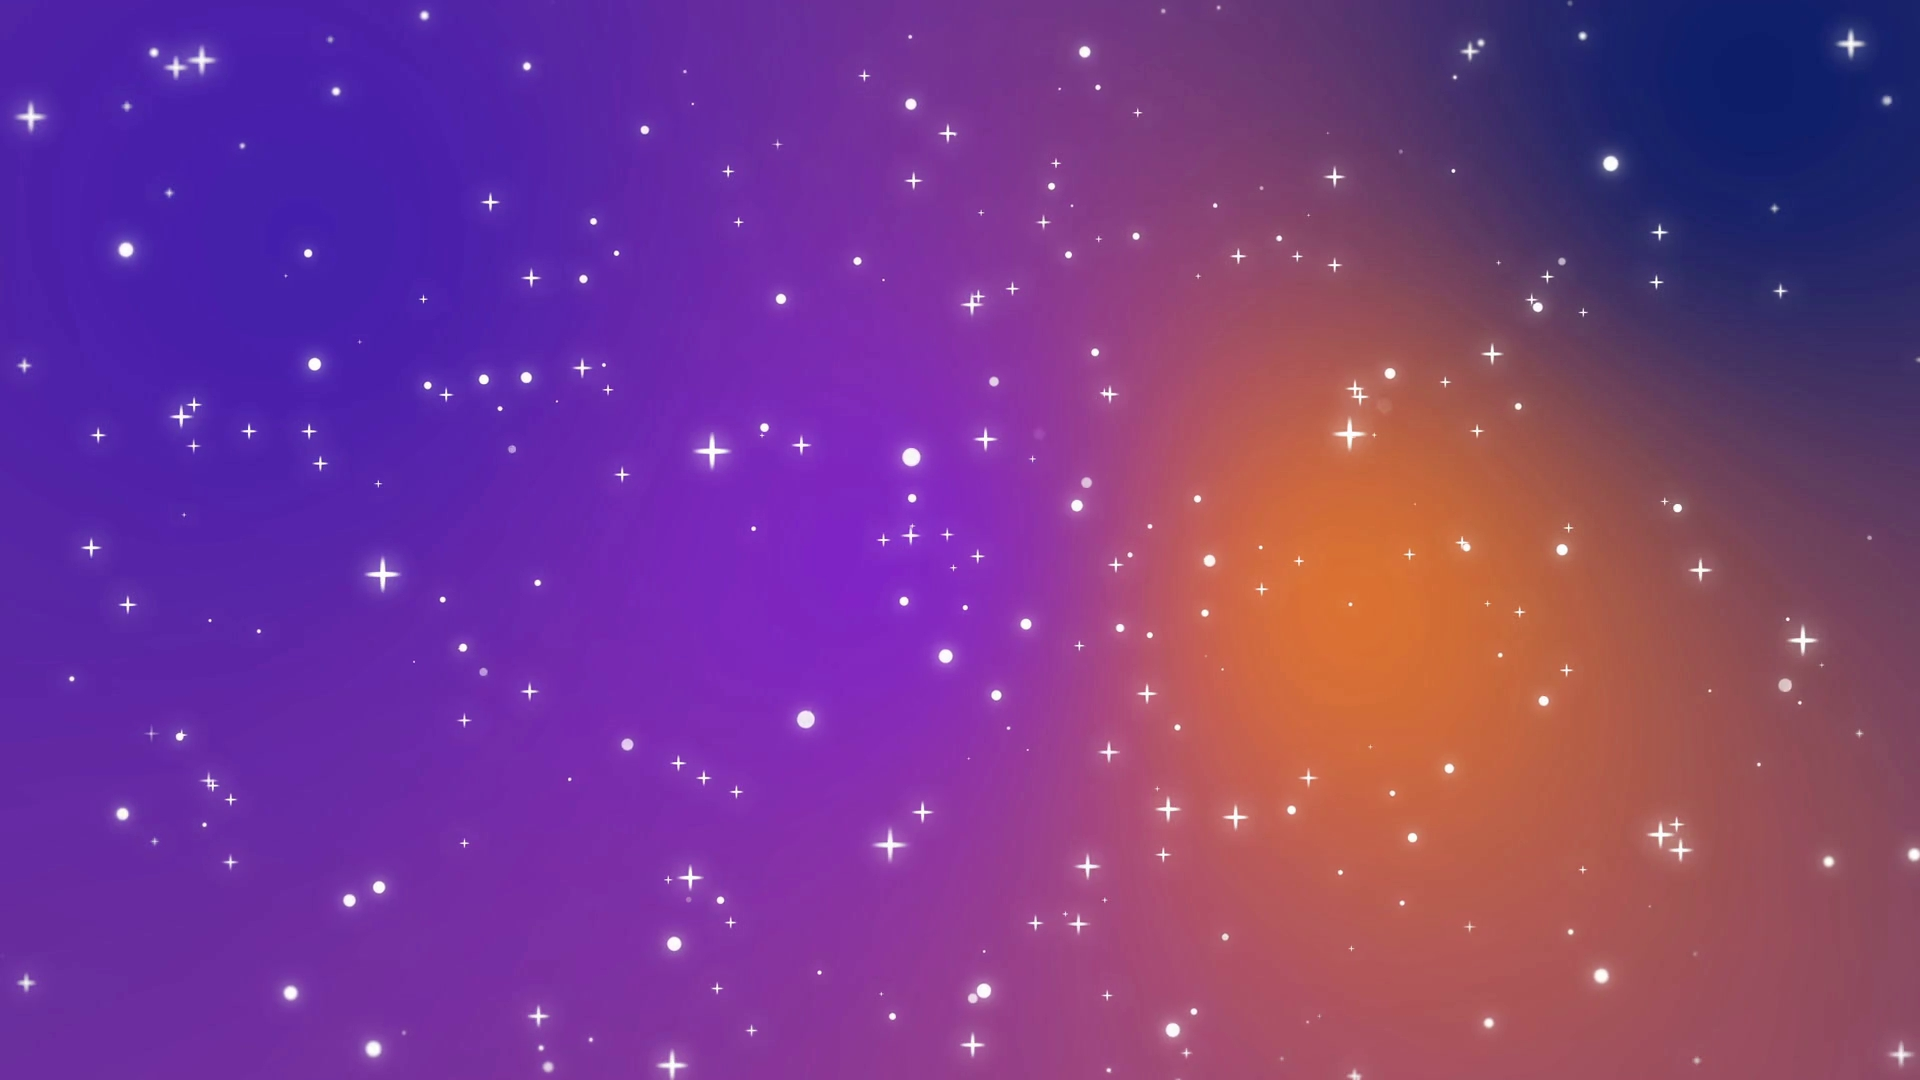 galaxy animation with shining light particle stars on colorful